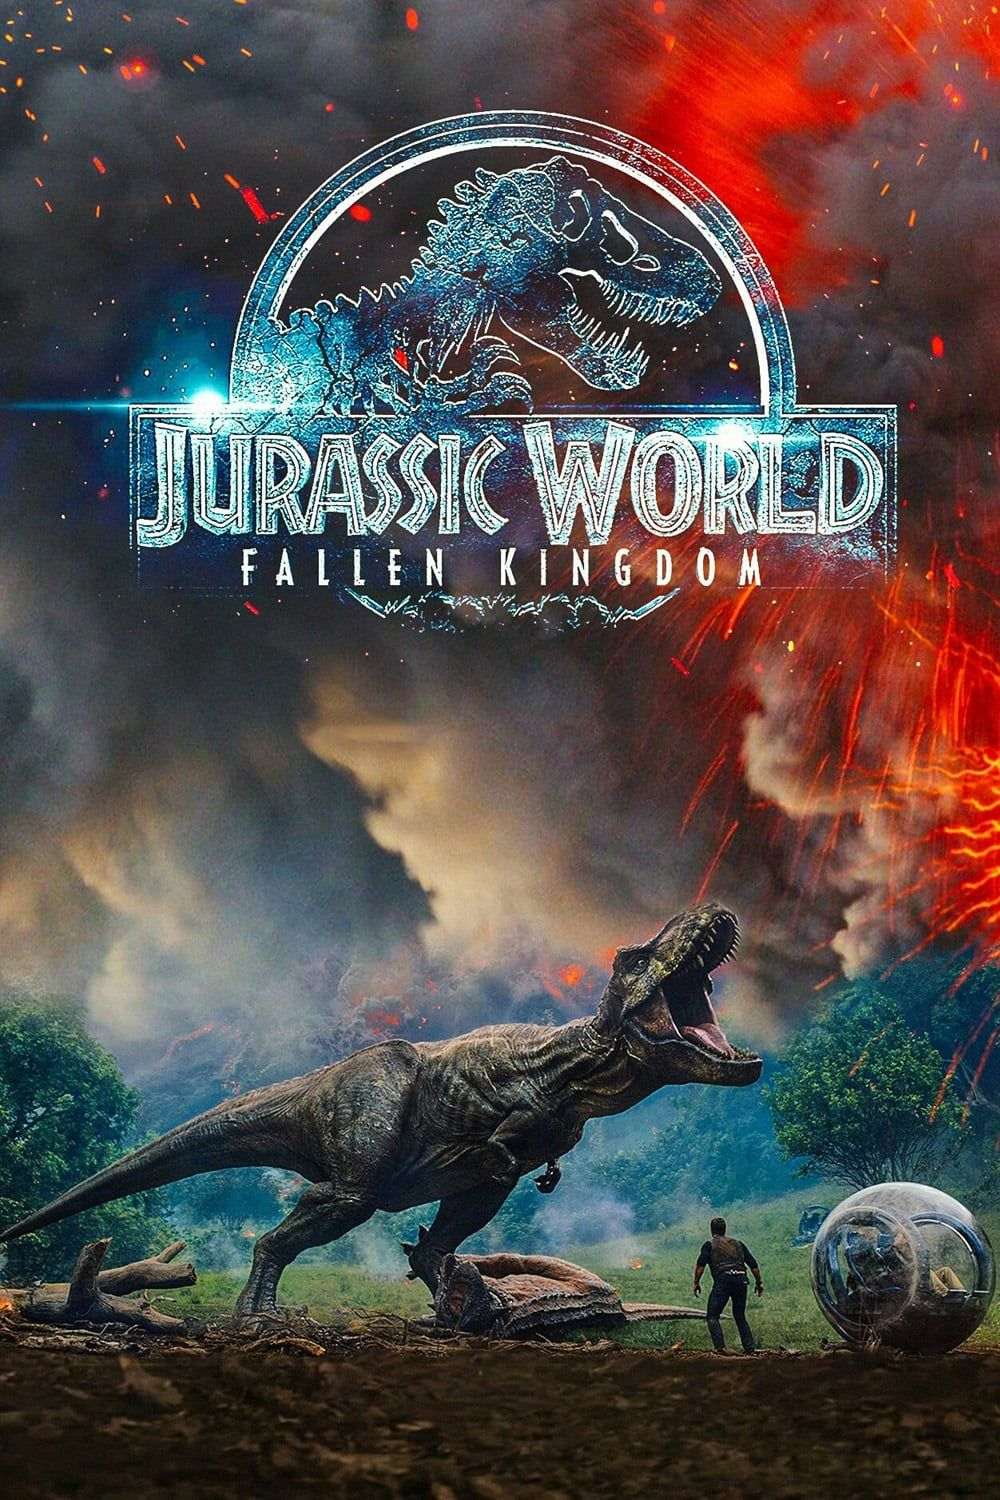 Watch Jurassic World Fallen Kingdom 2018 Full Movie Hd Quality Click The Picture And Jurassic World Pelicula Completa Jurassic World Peliculas De Terror